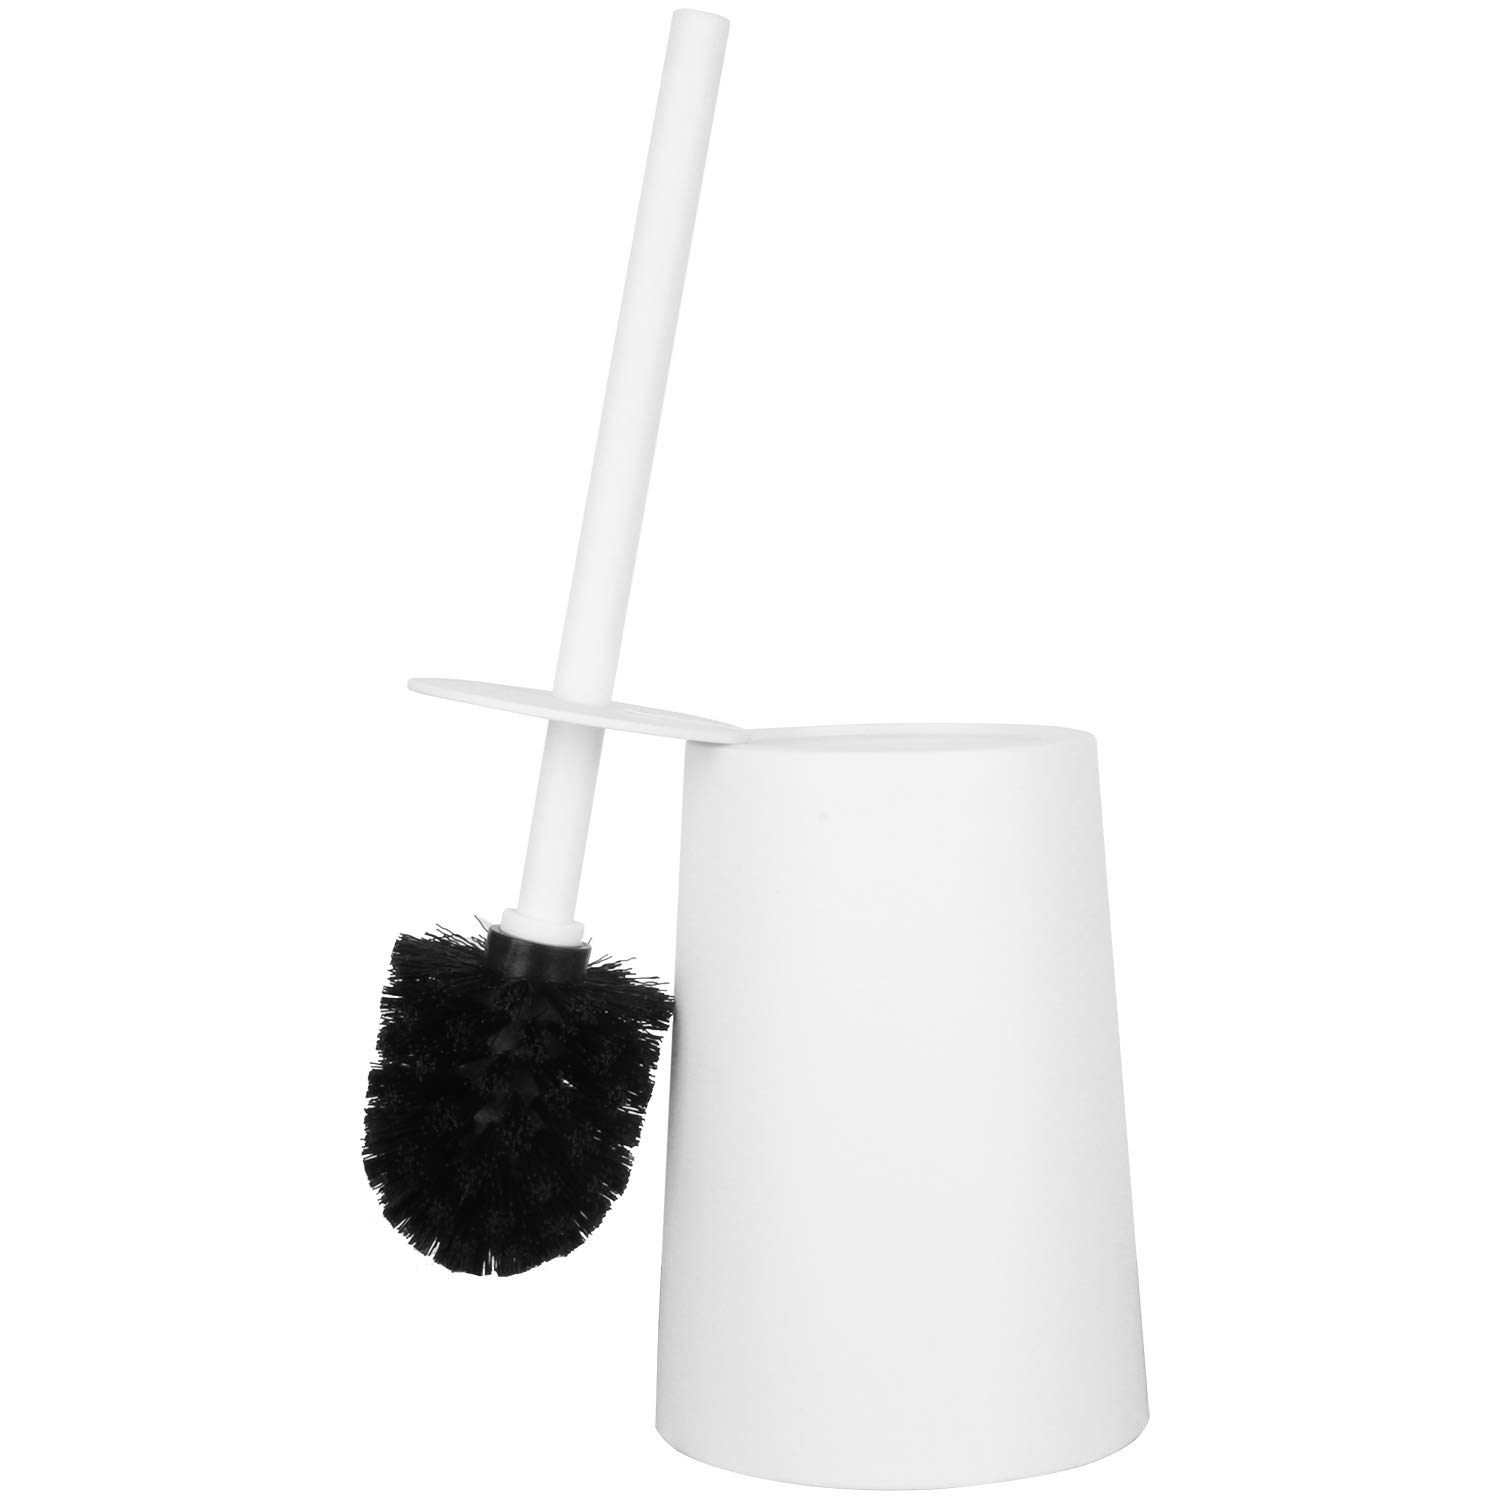 ROSOLI Toilet Brush, Toilet Brush and Holder for Bathroom Toilet Cleaning with 3600 Strong Bristles and 9.84 Inch Long Non-Slip Handle Toilet Cleaning Brush Kit (White)